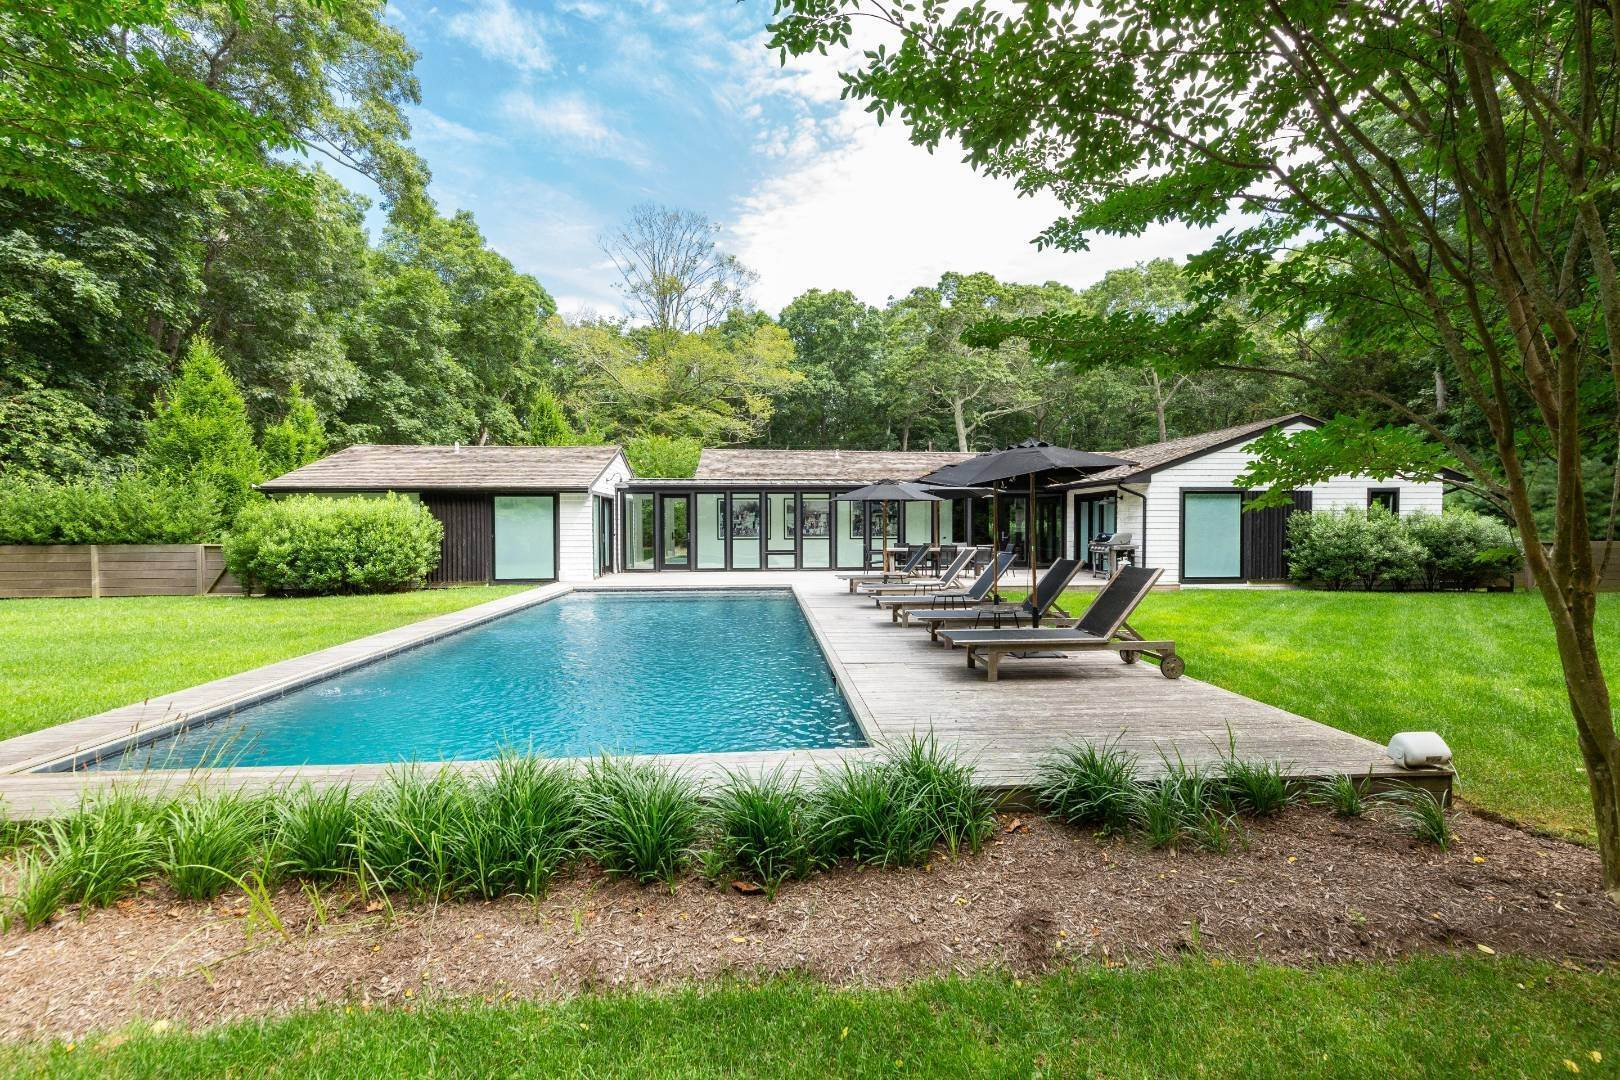 Single Family Home for Sale at Northwest Woods Sophistication 229 Cedar Street, East Hampton, NY 11937